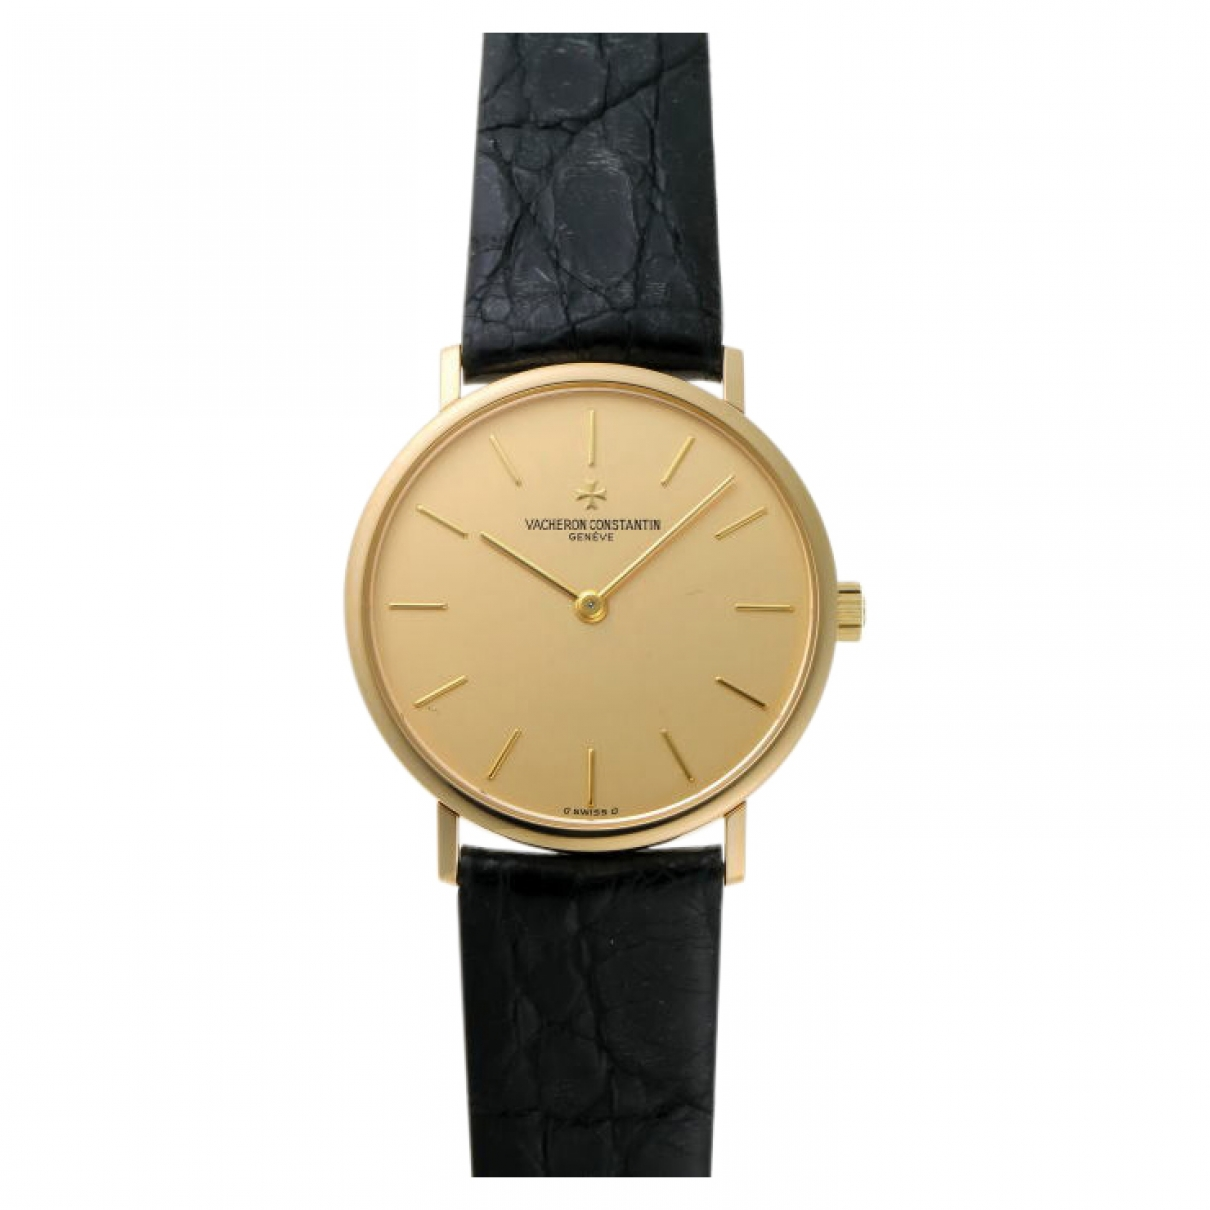 Vacheron Constantin \N Black Yellow gold watch for Women \N